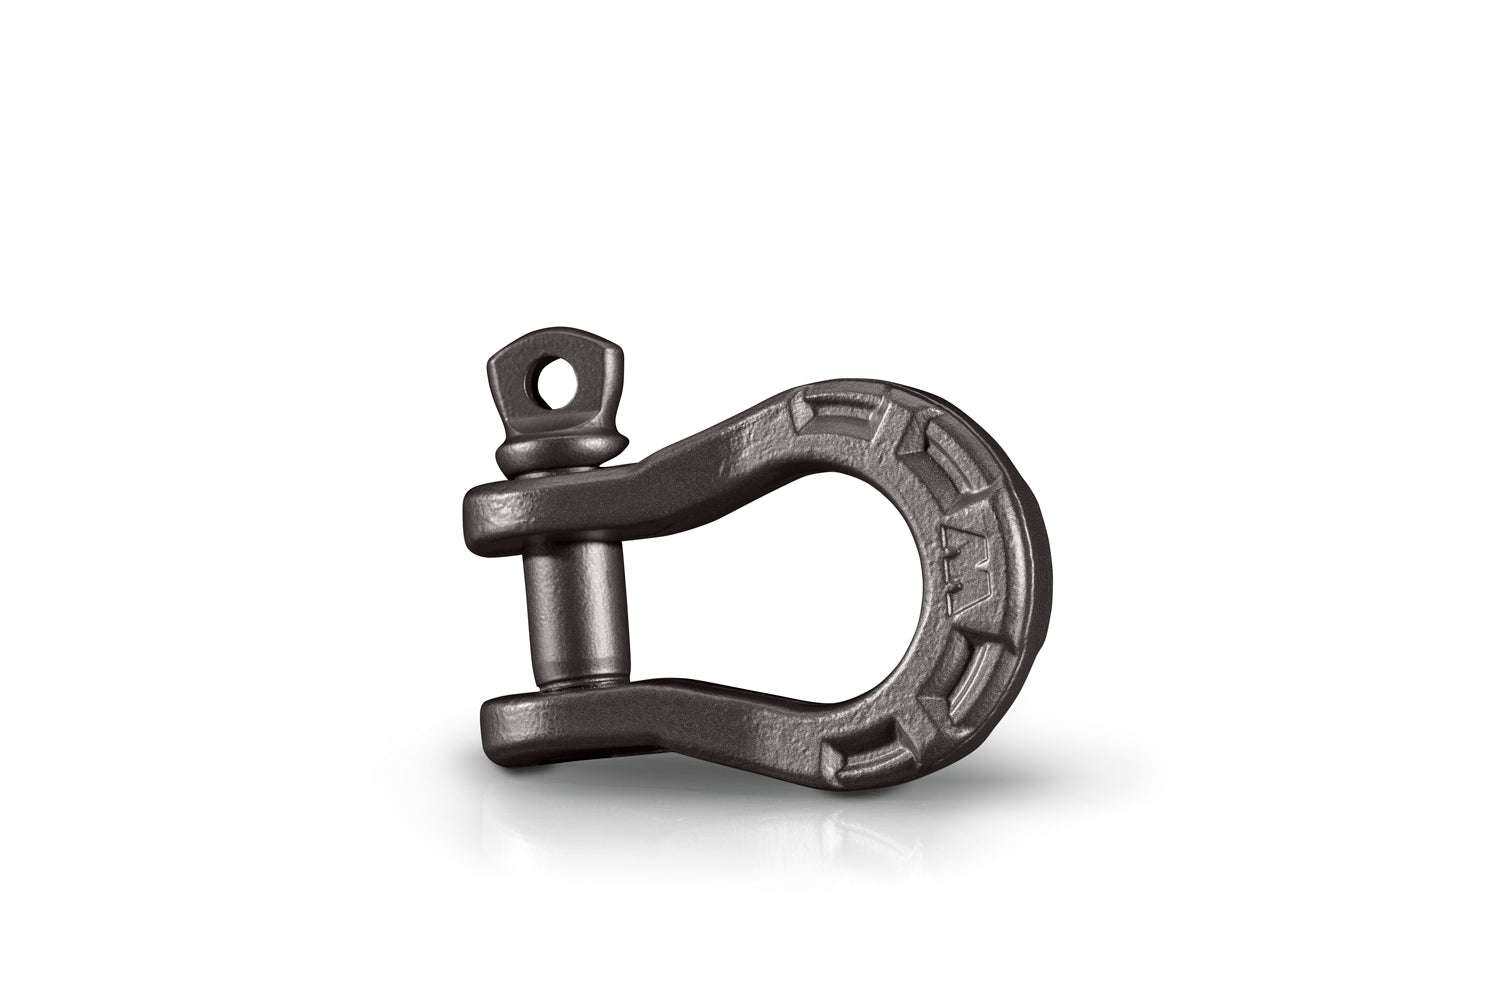 WARN Epic Shackles Rigging Accessory